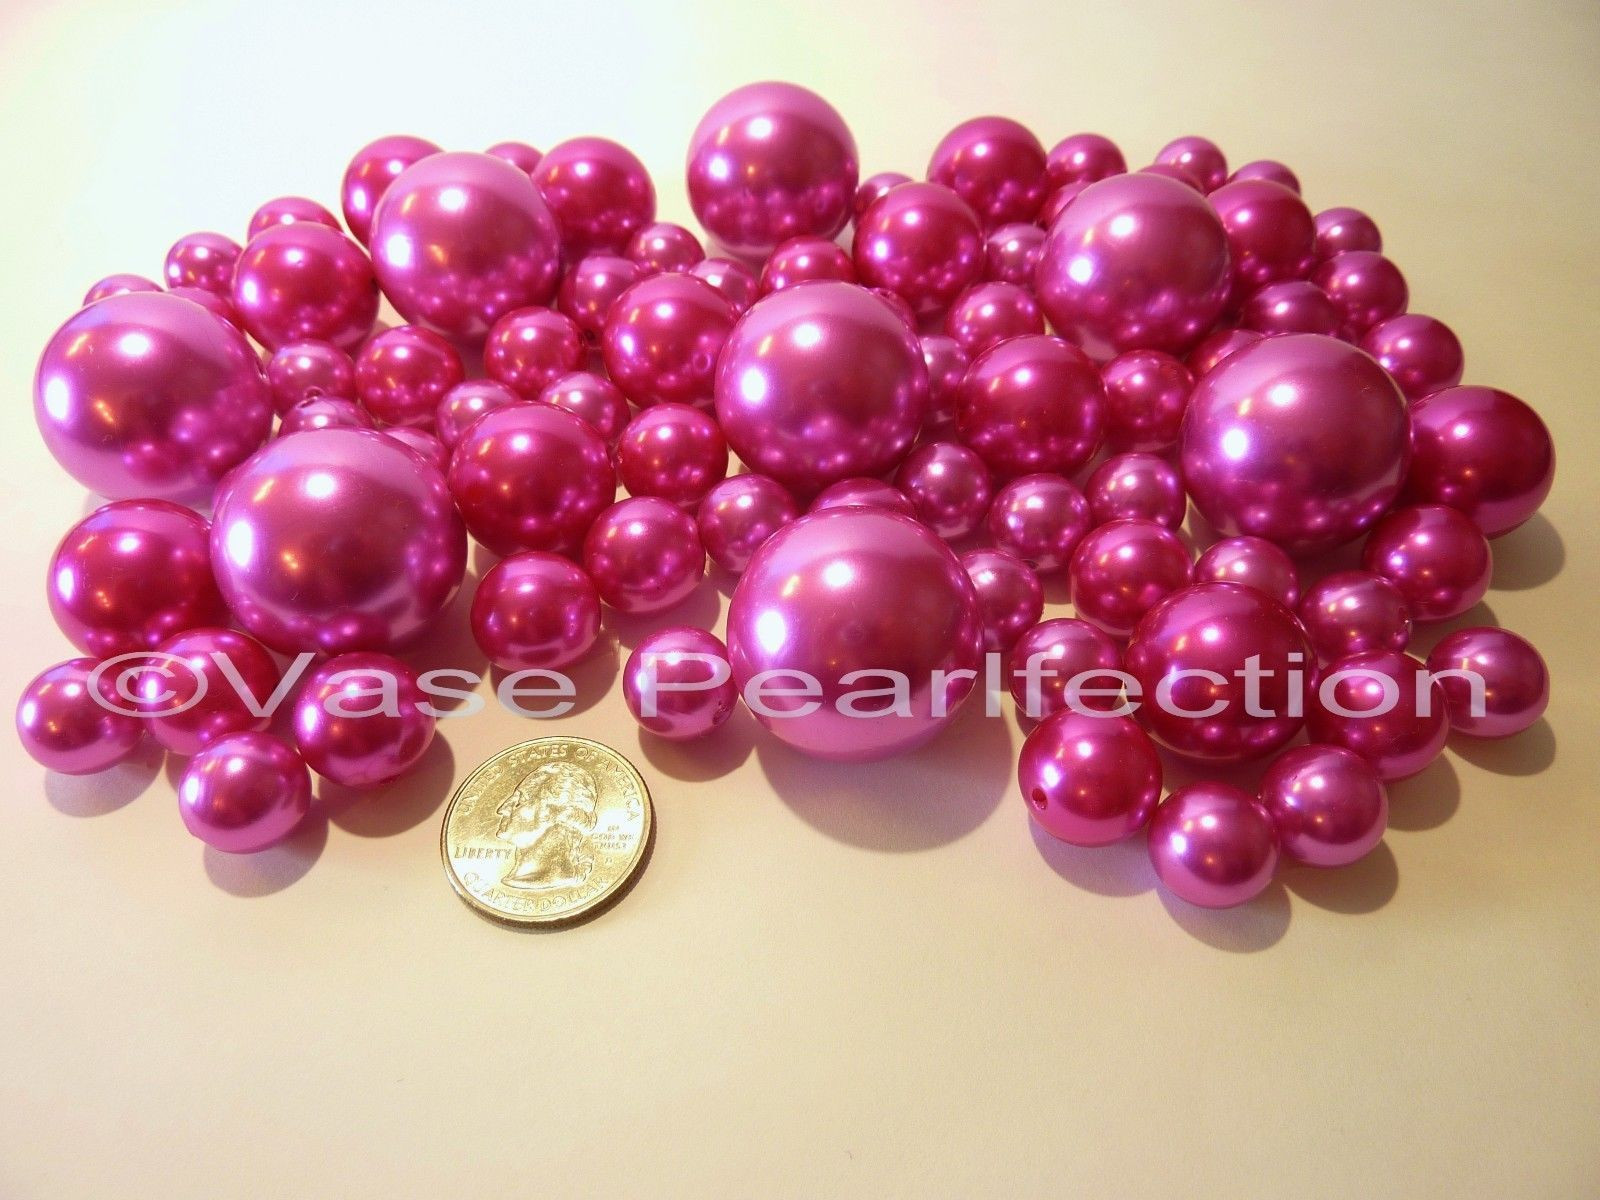 Pink Pearl Vase Fillers Of All Red Pearls Jumbo assorted Sizes Vase Fillers for Dec Inside Hot Pink Pearls Jumbo assorted Sizes for Vase Decorations Table Scatter